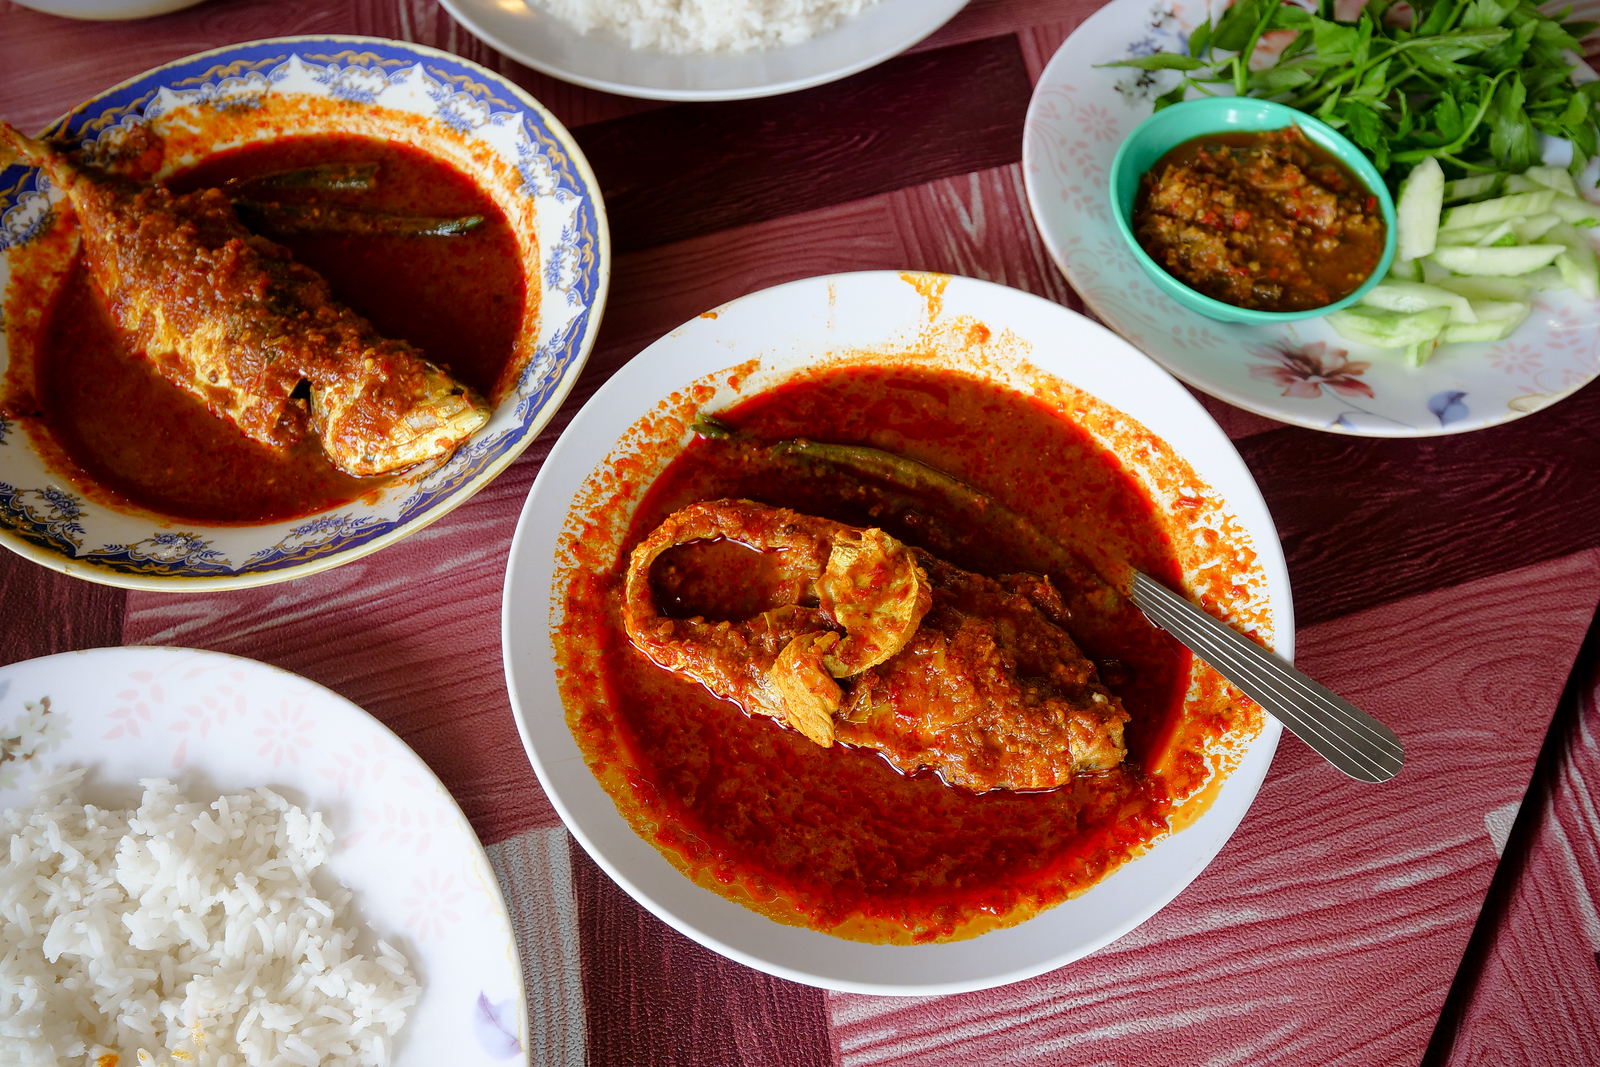 A truly amazing meal of Asam Pedas in Melaka, this is one restaurant that will keep me coming back for more